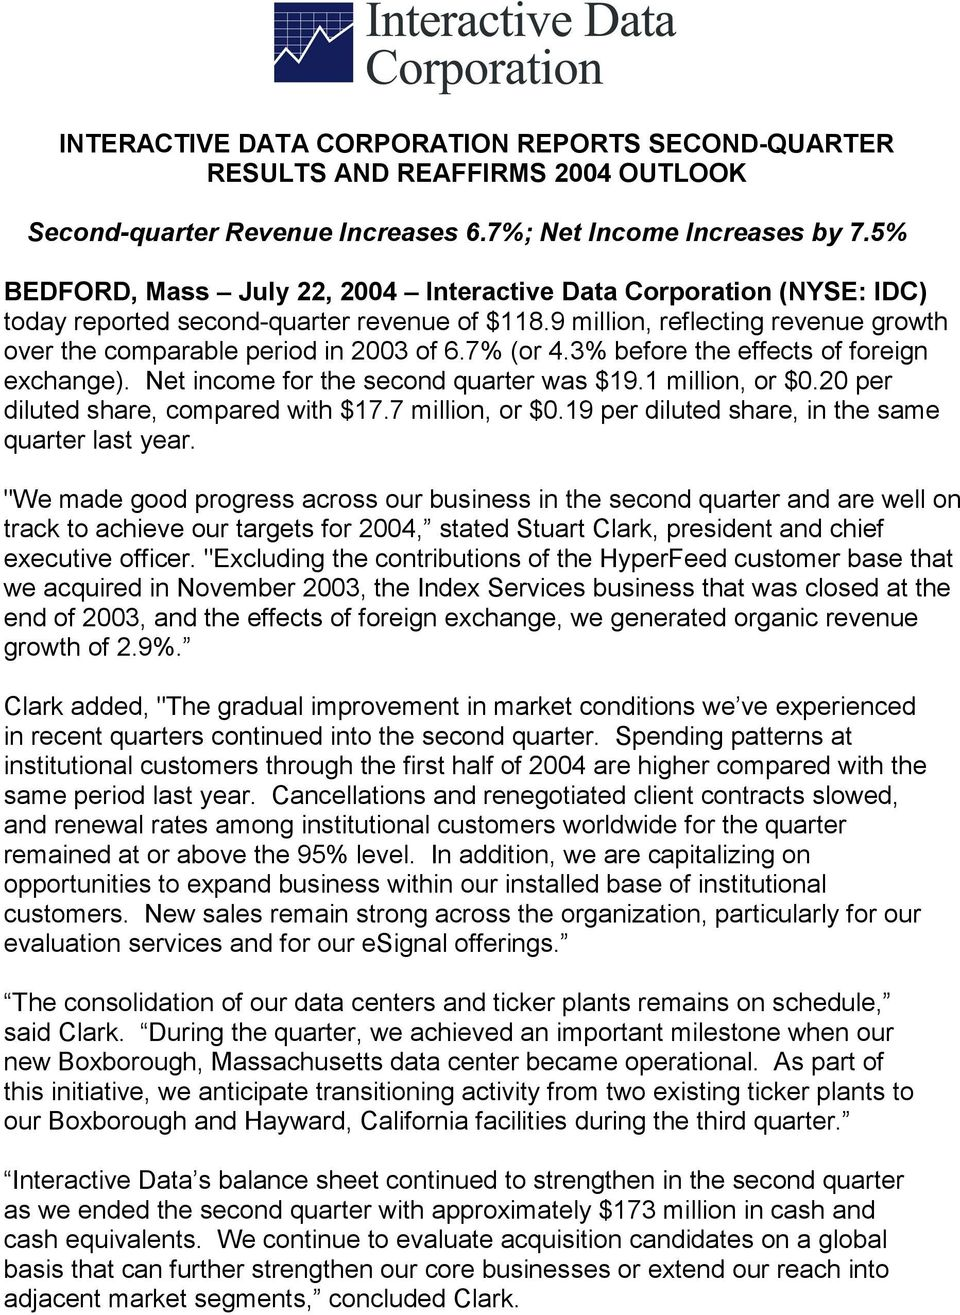 7% (or 4.3% before the effects of foreign exchange). Net income for the second quarter was $19.1 million, or $0.20 per diluted share, compared with $17.7 million, or $0.